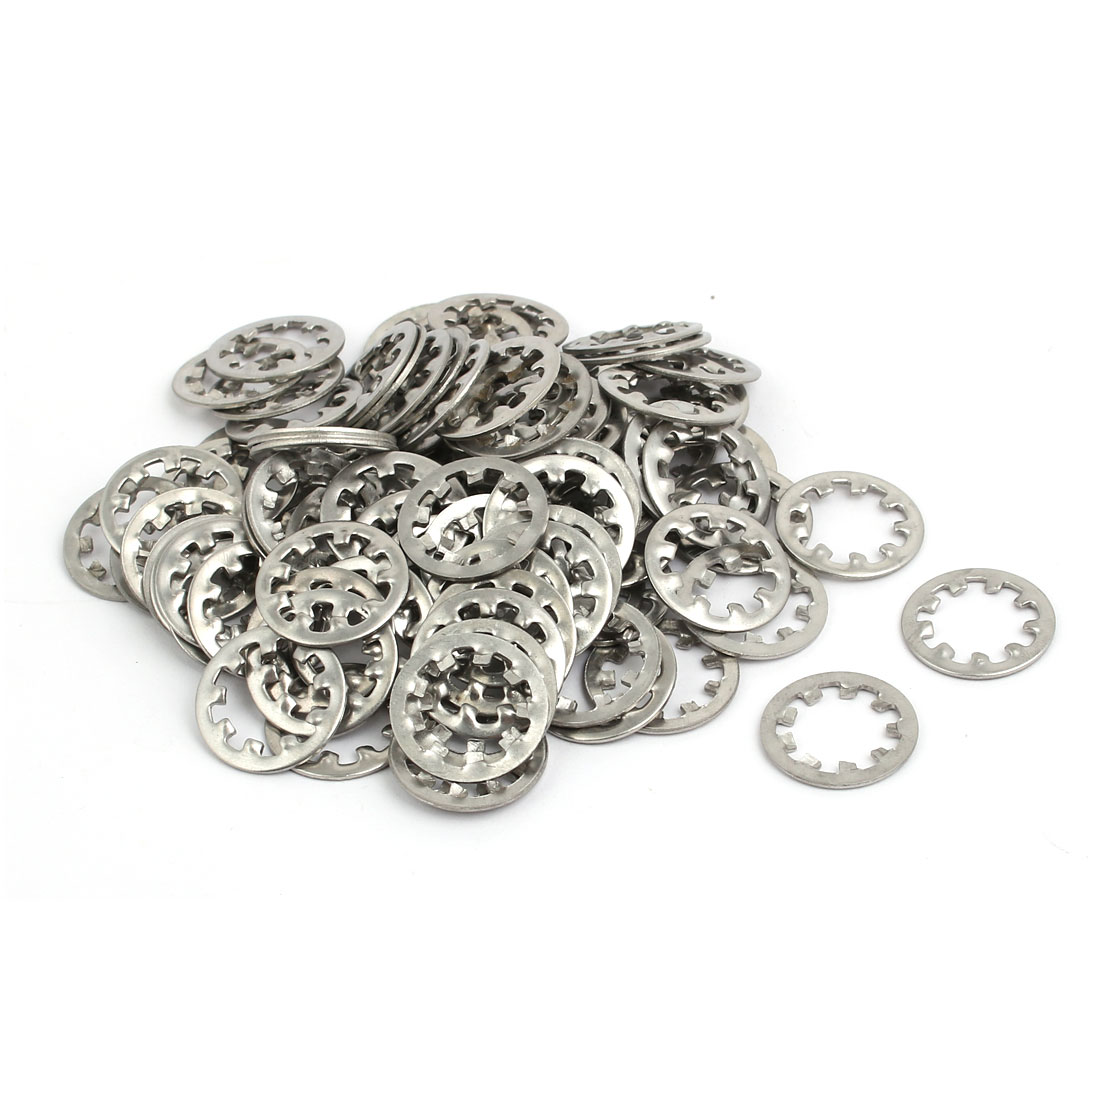 10mm Inner Dia Stainless Steel Internal Tooth Lock Washer Silver Tone 100pcs